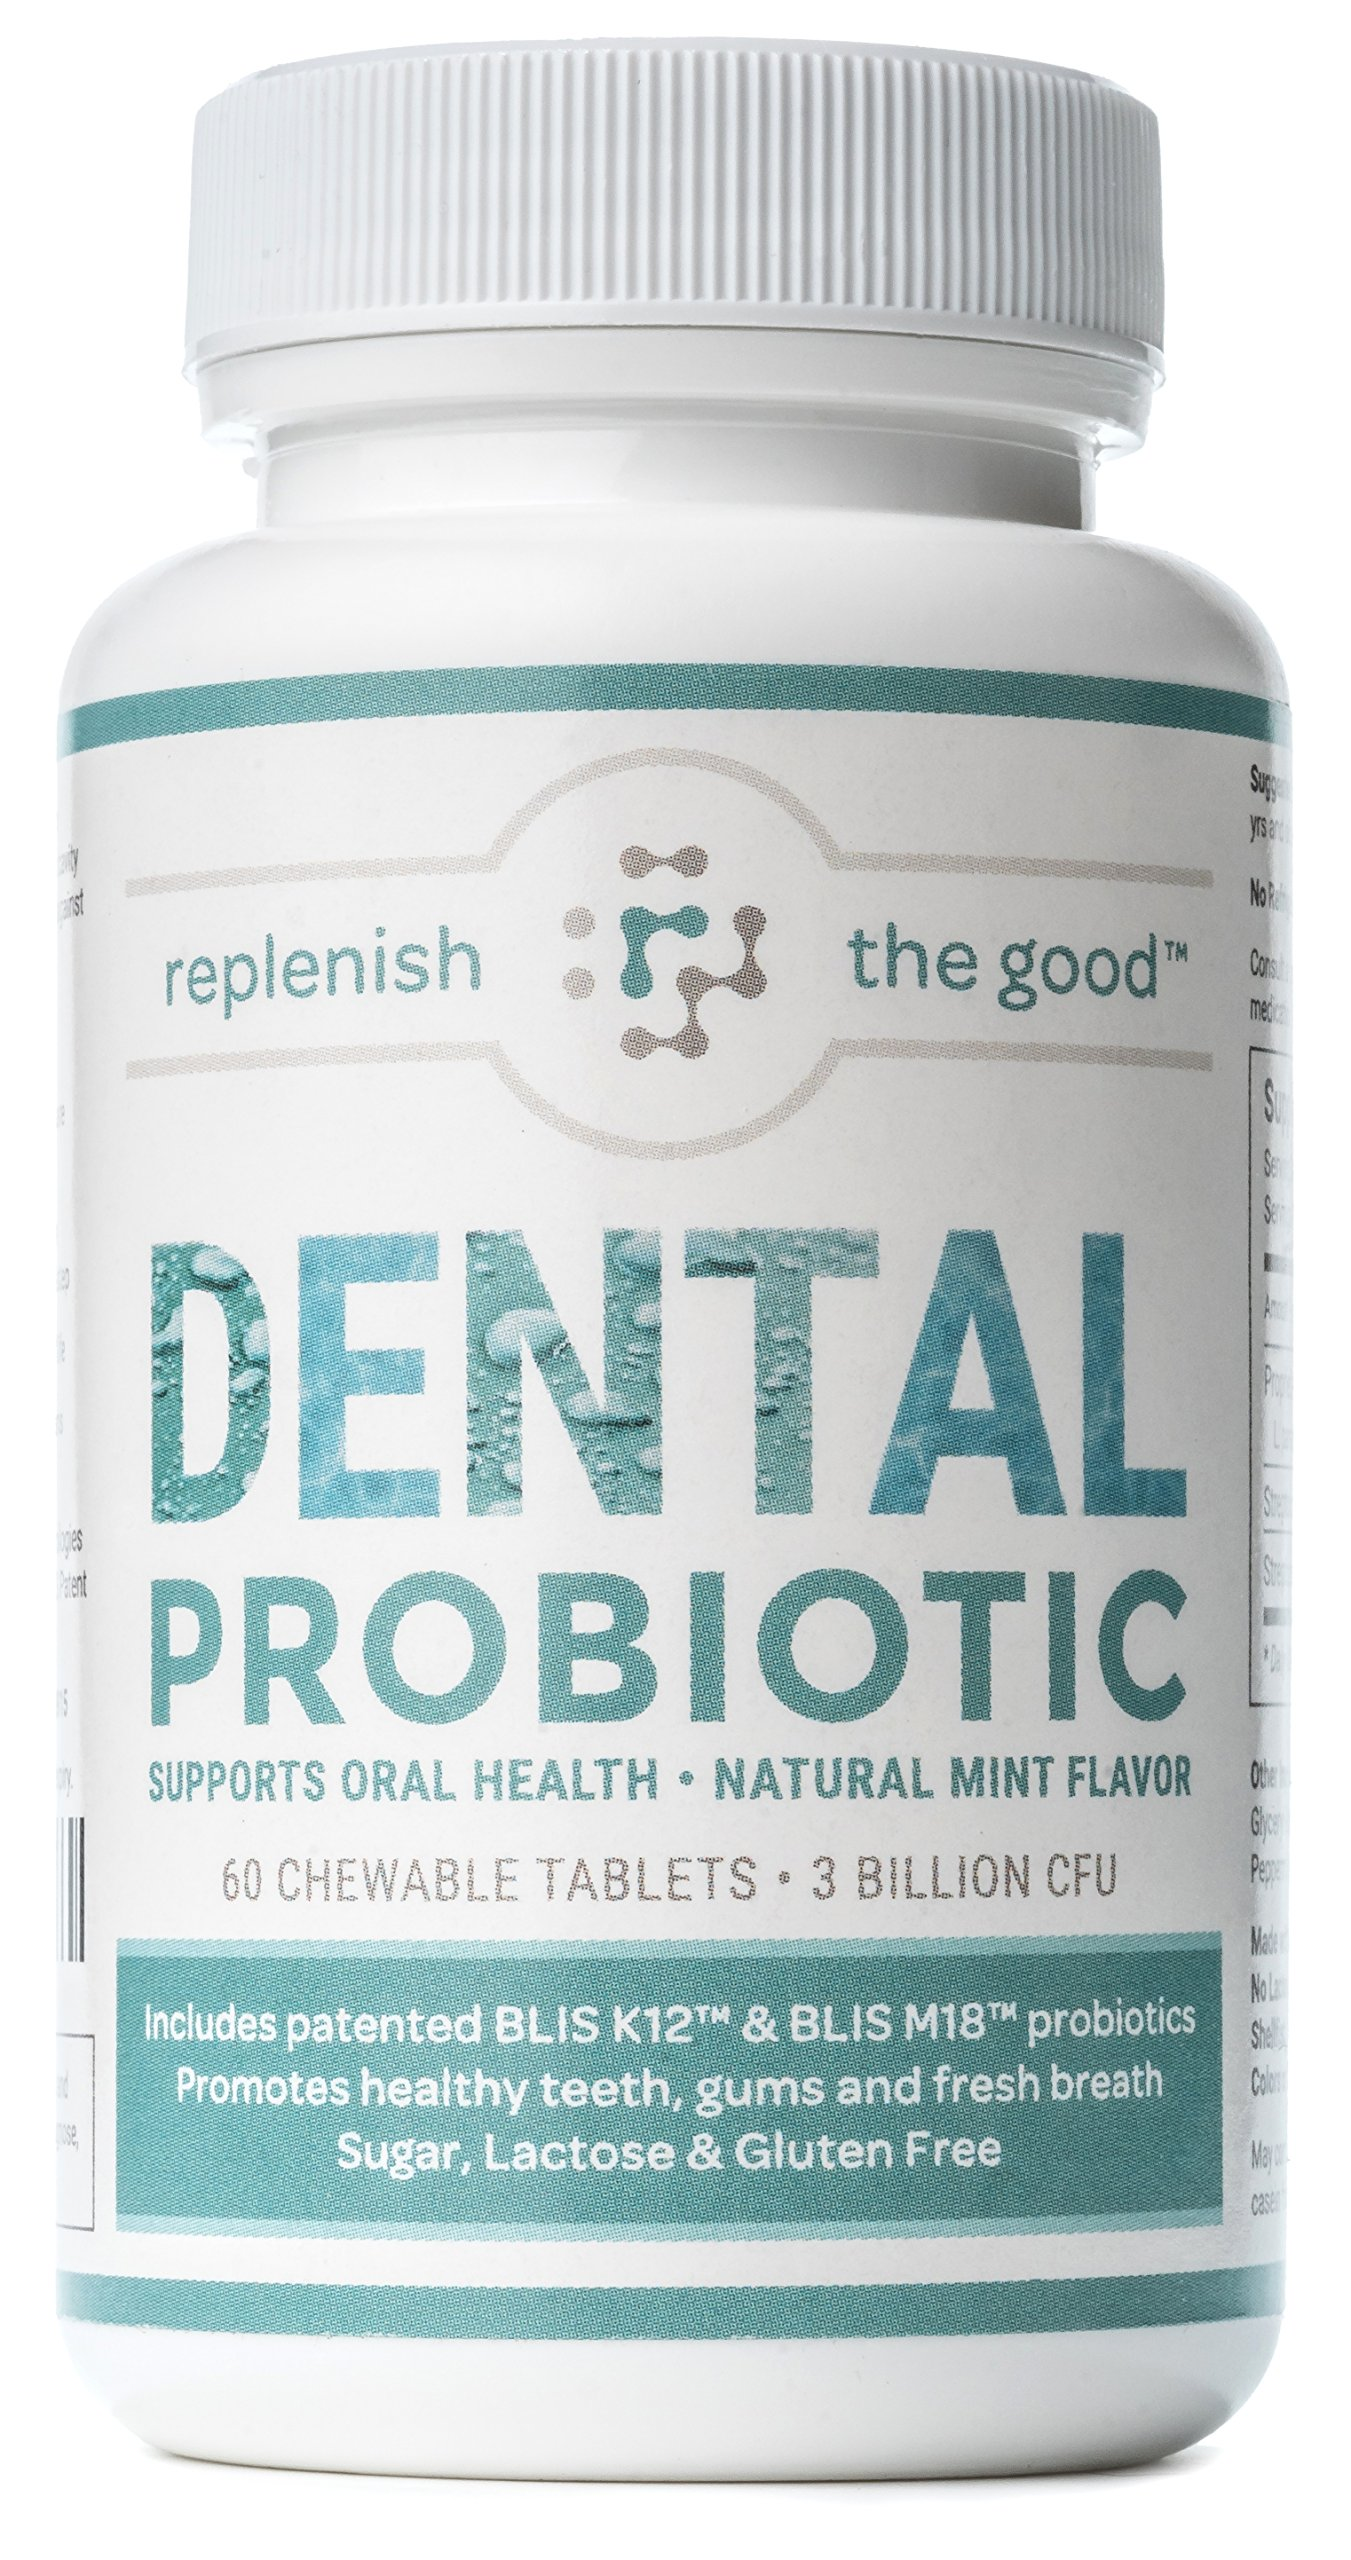 Dental Probiotic 60-Day Supply. Oral probiotics for Bad Breath, Tooth Decay, Strep Throat. Boosts Oral Health and Combats halitosis. Contains Streptococcus salivarius BLIS K12 & BLIS M18. by Replenish The Good